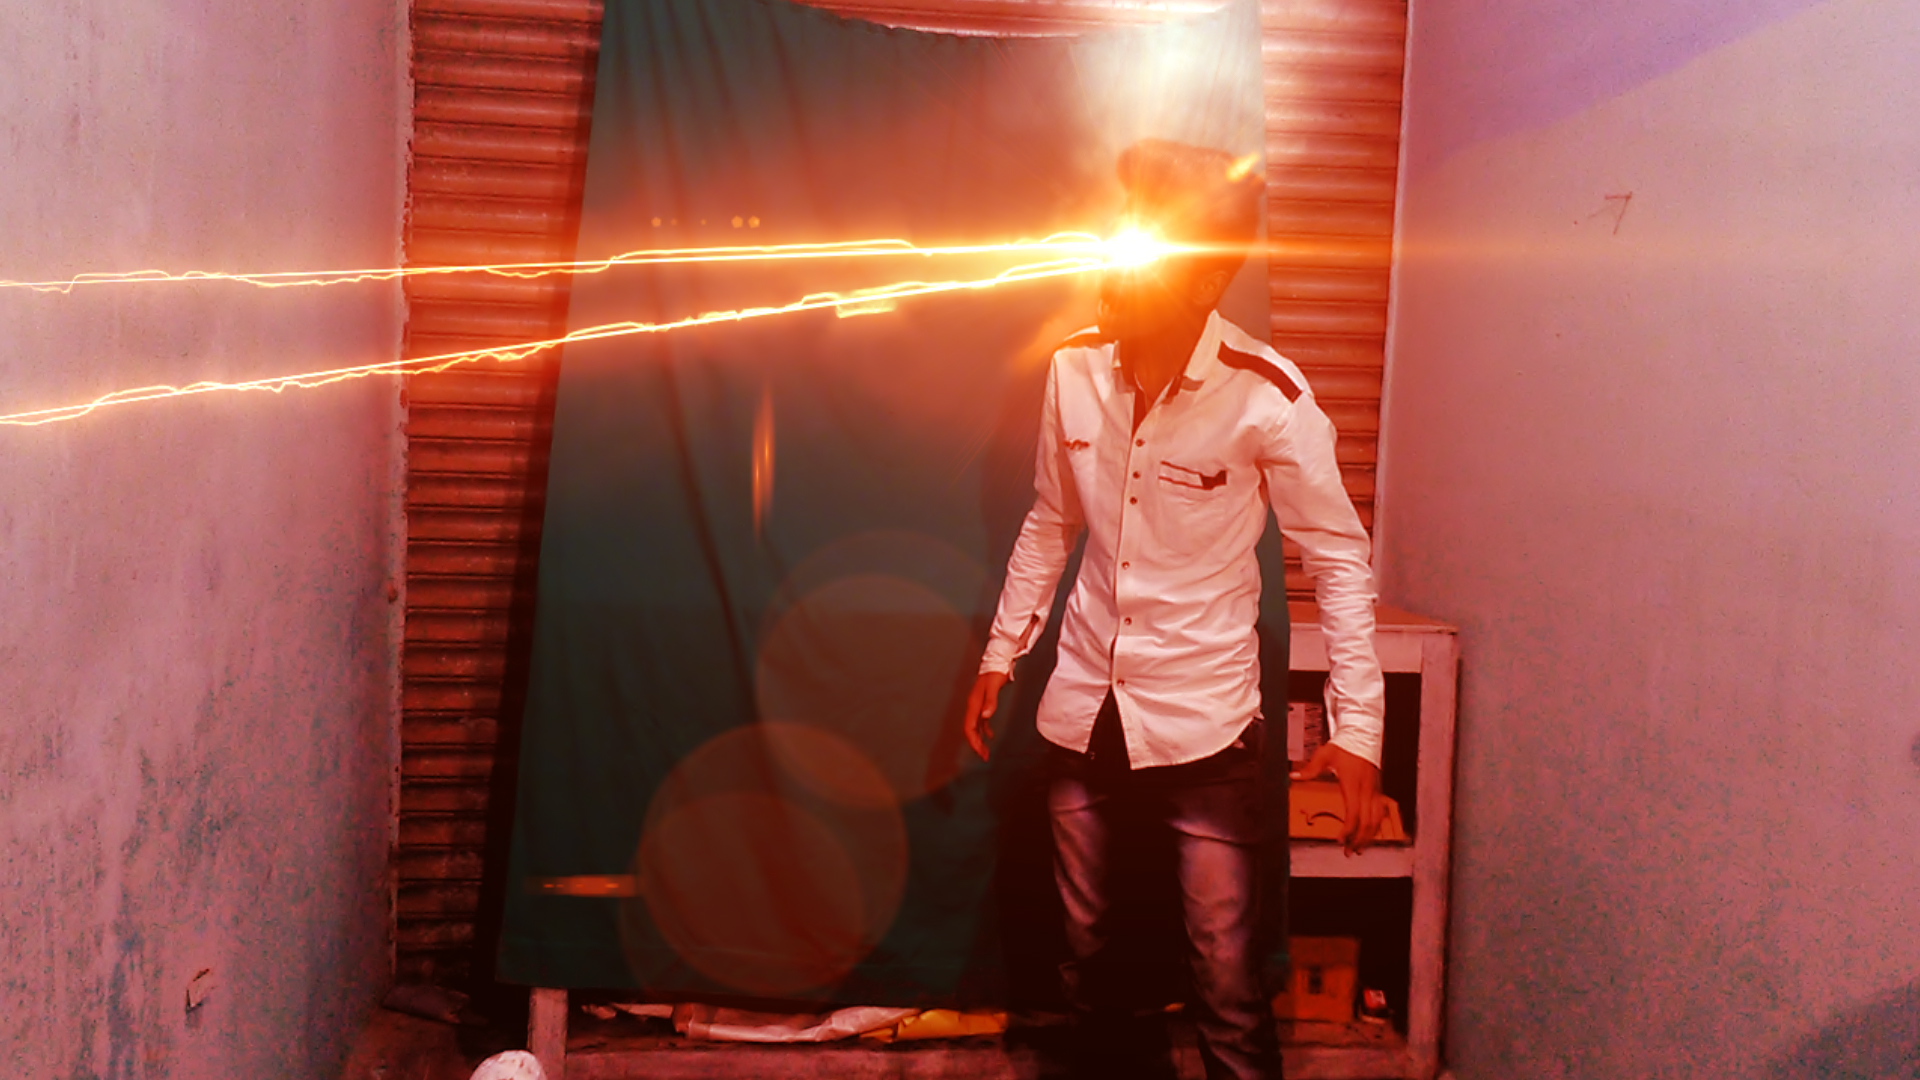 will make you Superman heat vision in your shoot video